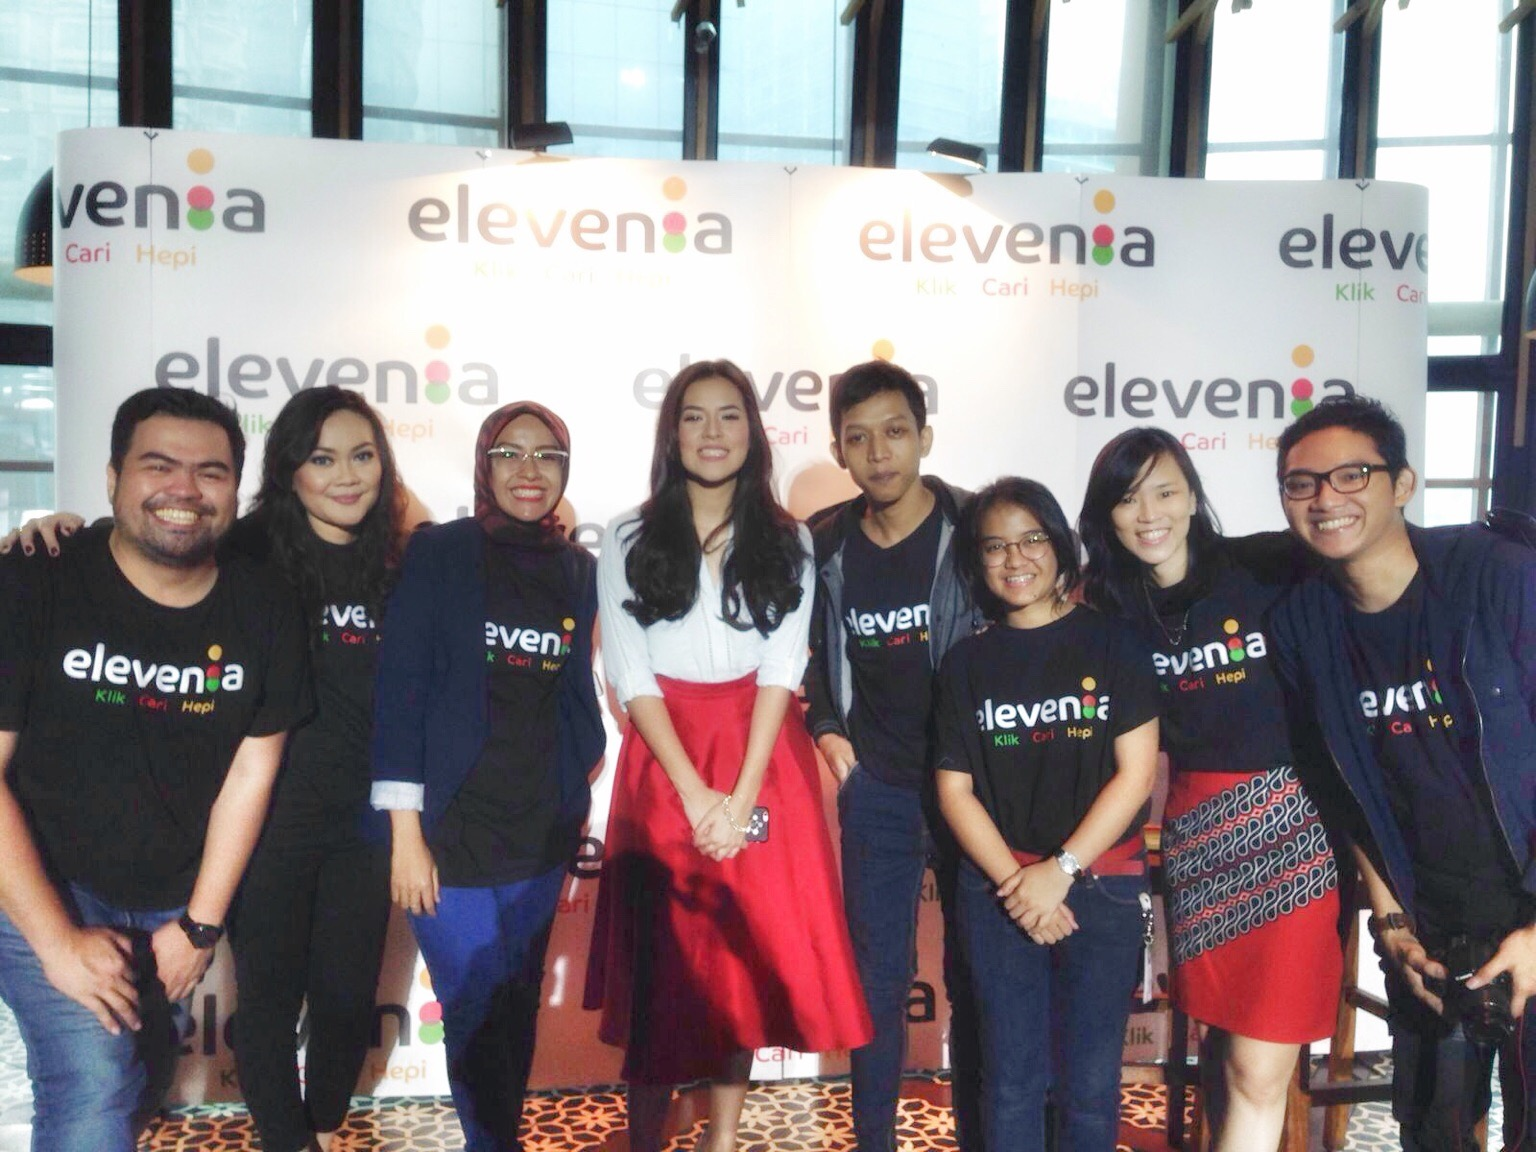 From Left to Right: Iriel Parmato Henry, Public Realtion Manager elevenia, Anggita Vela Lydia, General Manager Partnership and Promo, Selliyanti Rahmat, Partnership and Promo Manager, Raisa Andriana, Brand Ambasador elevenia, Karyo Reasearch Analyst elevenia, Alita Juanda, Promo and Partnership elevenia, Madeleine Ong de Guzman, VP Marketing, Lukas Sabodi, Social Media Manager elevenia